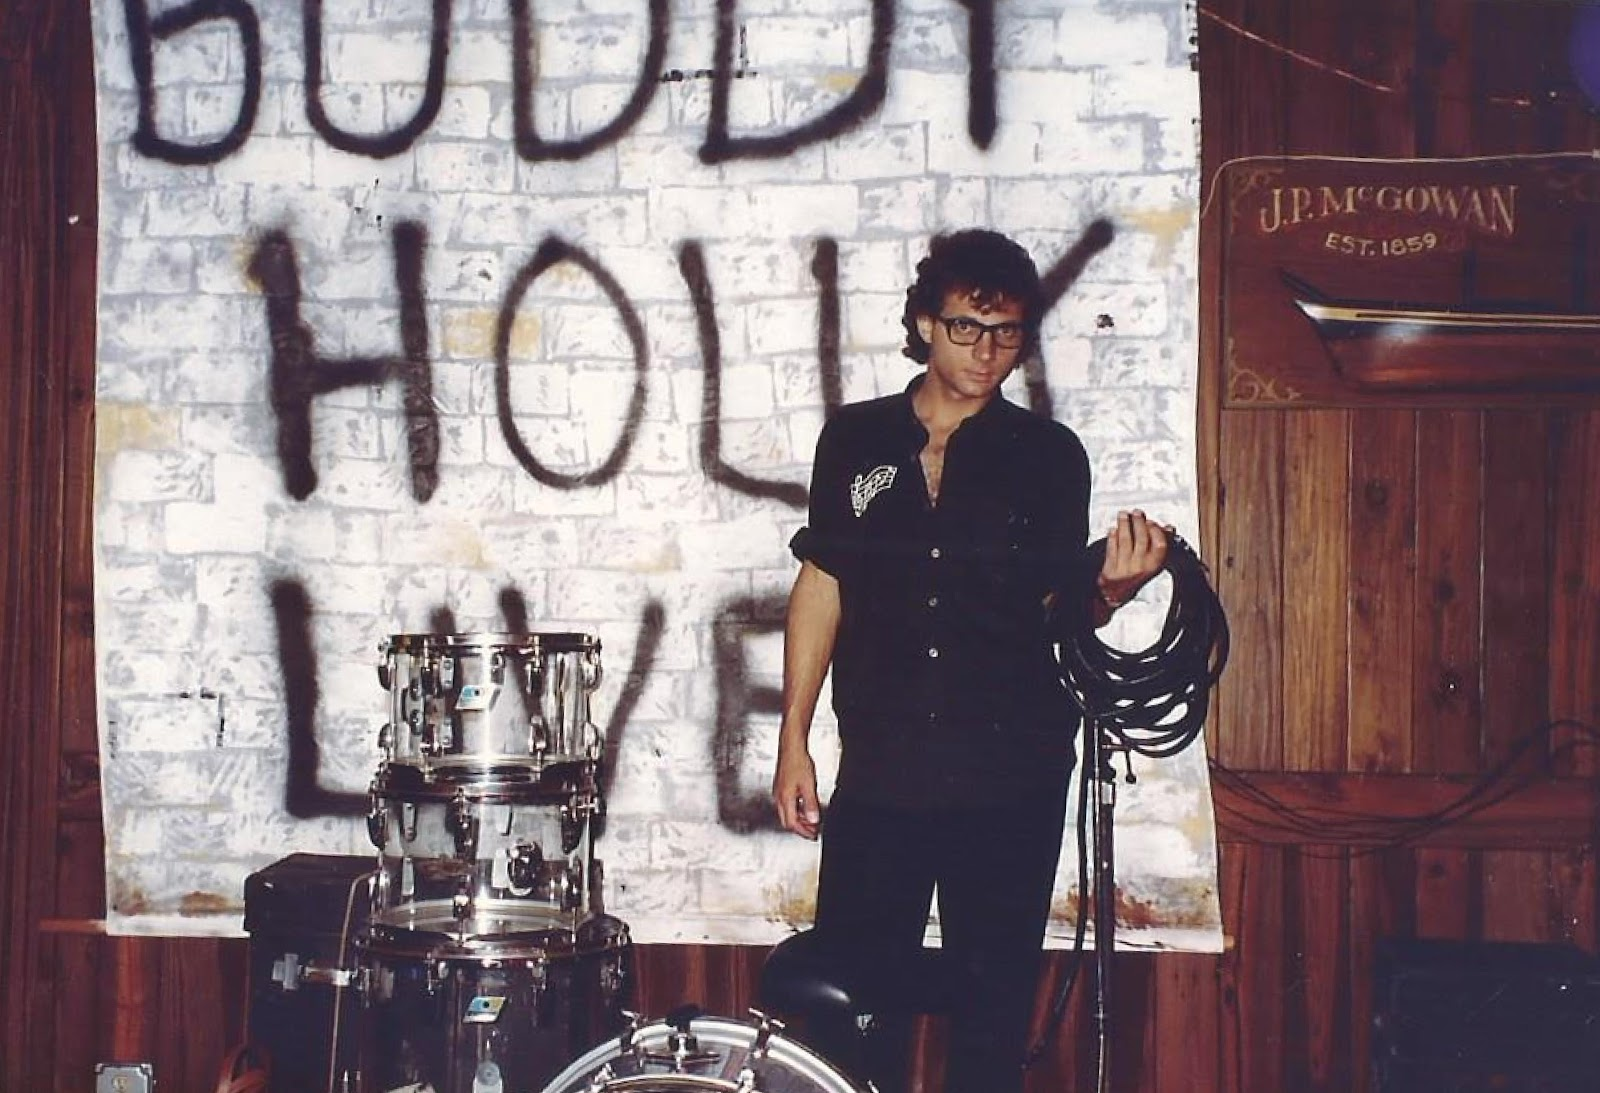 Buddy Holly Show